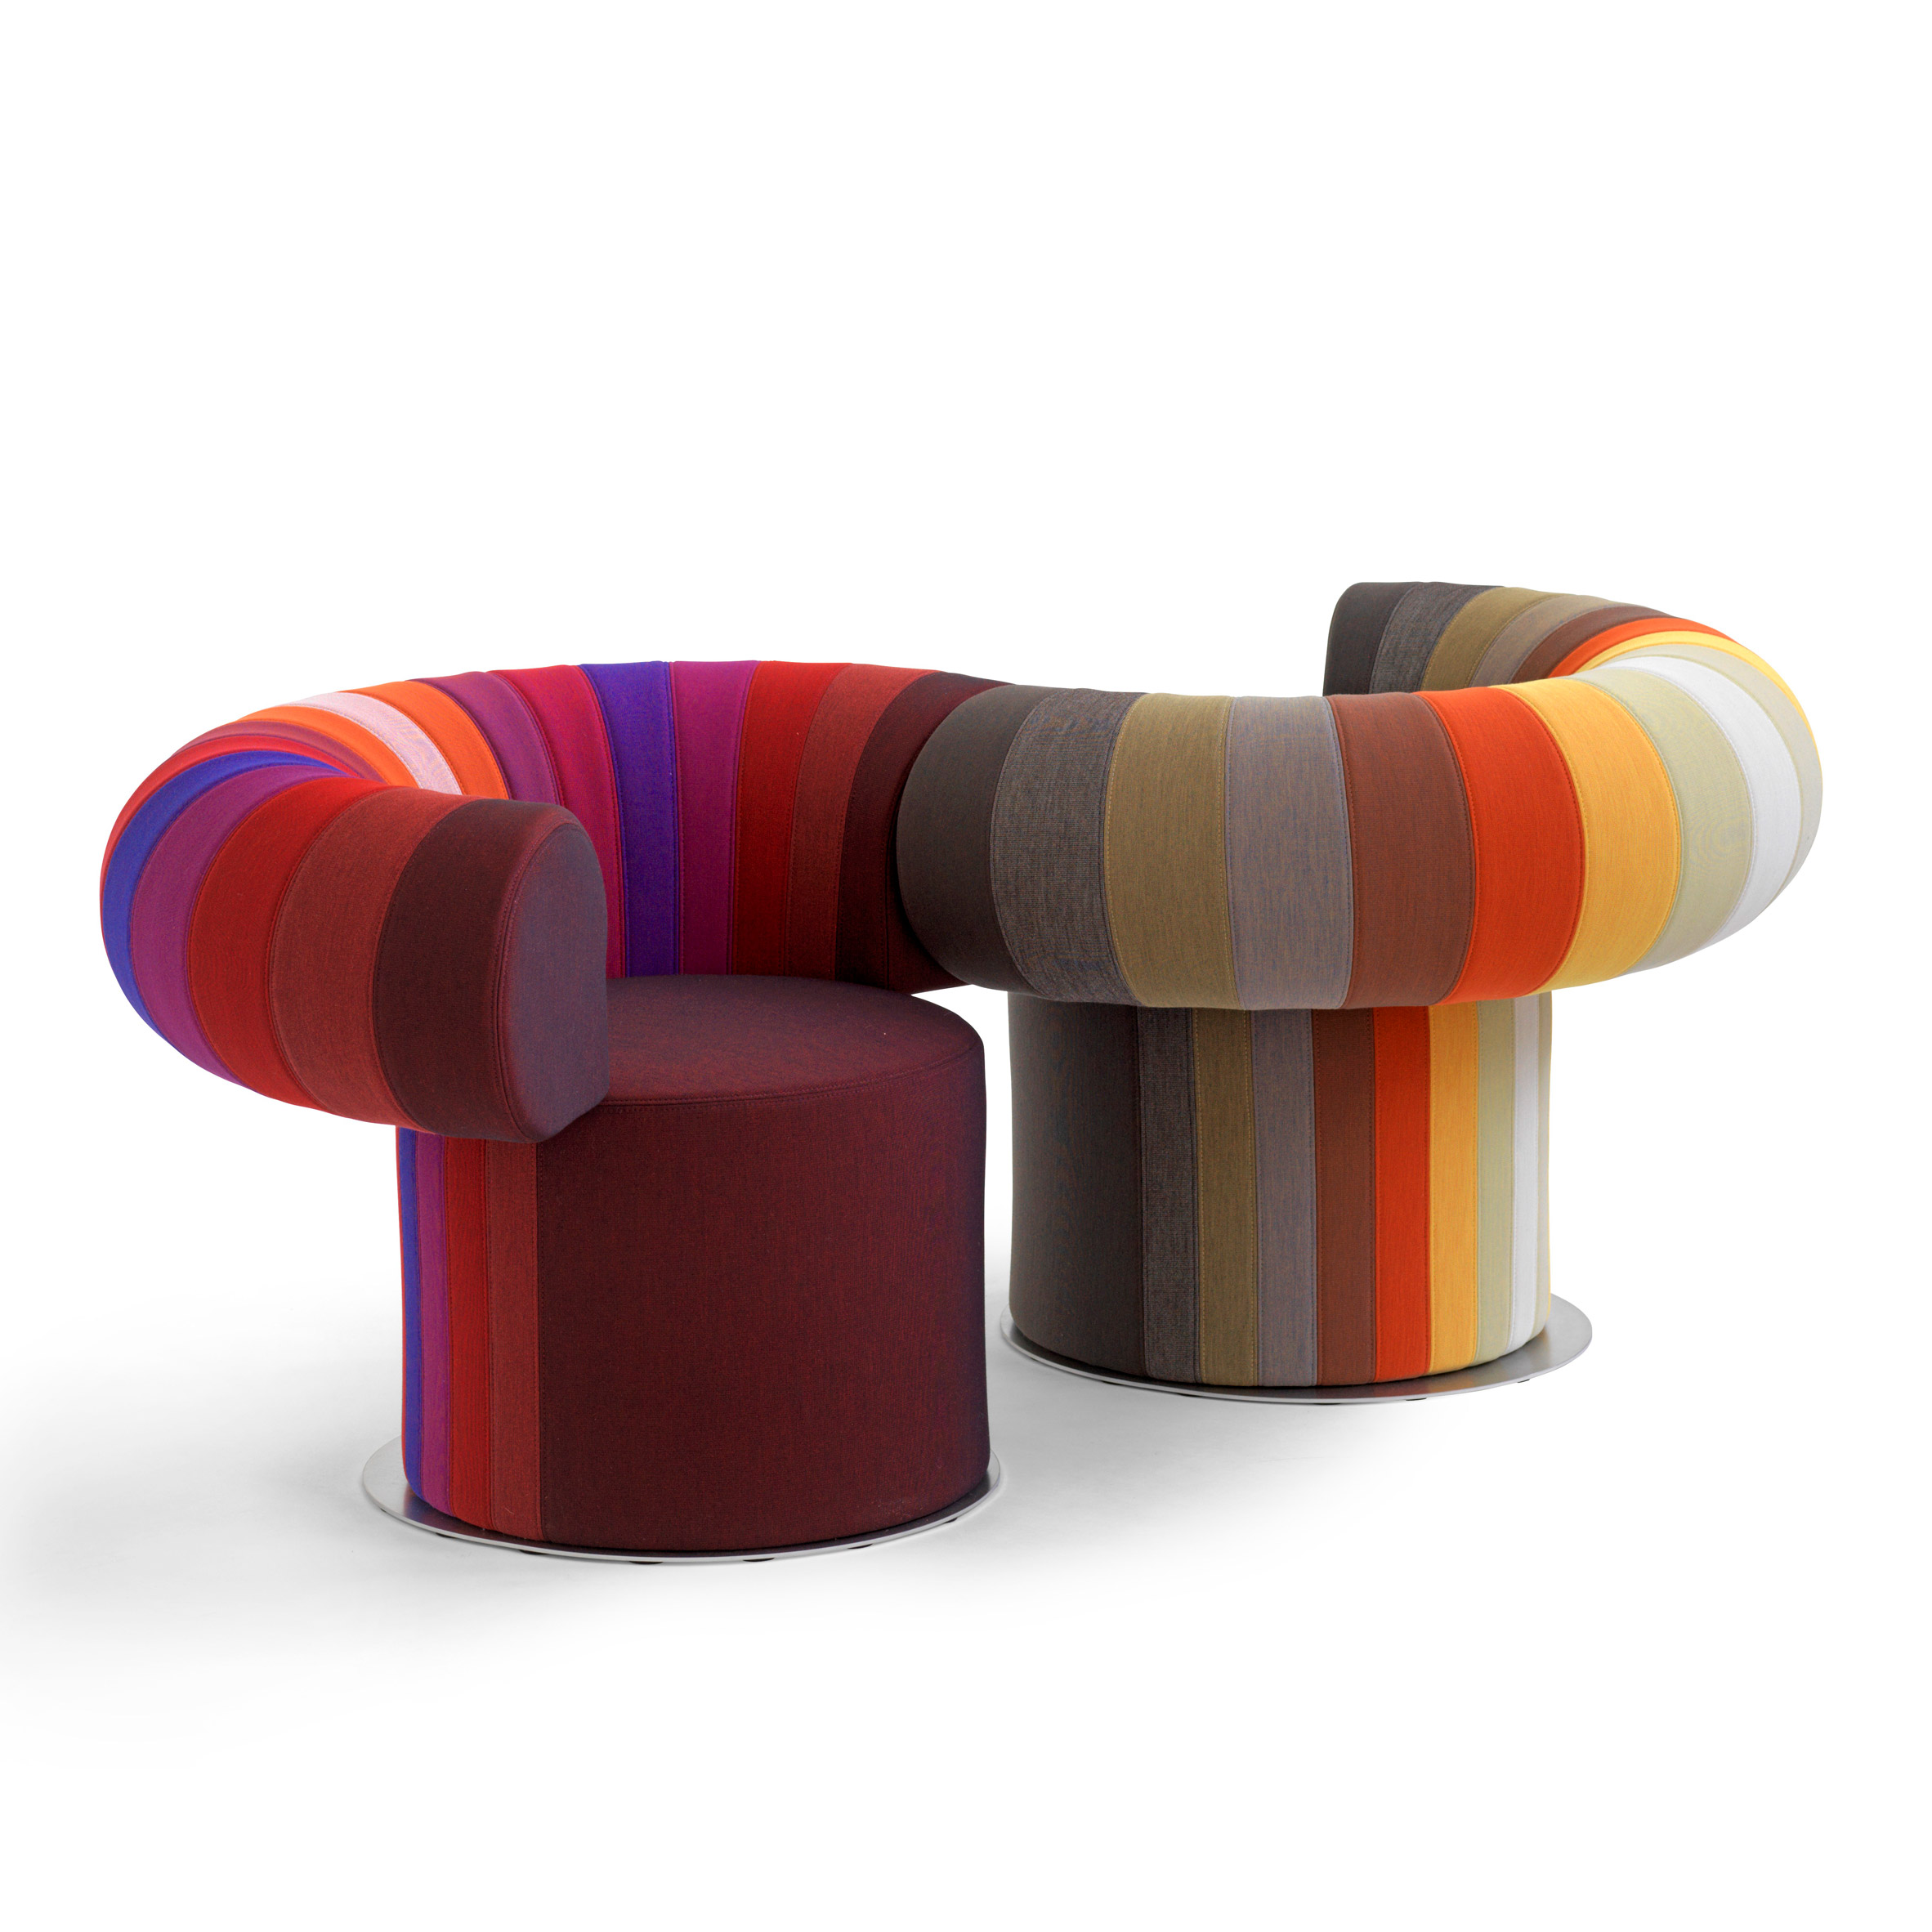 Big Talk lounge chair by Adam Goodrum for Blå Station